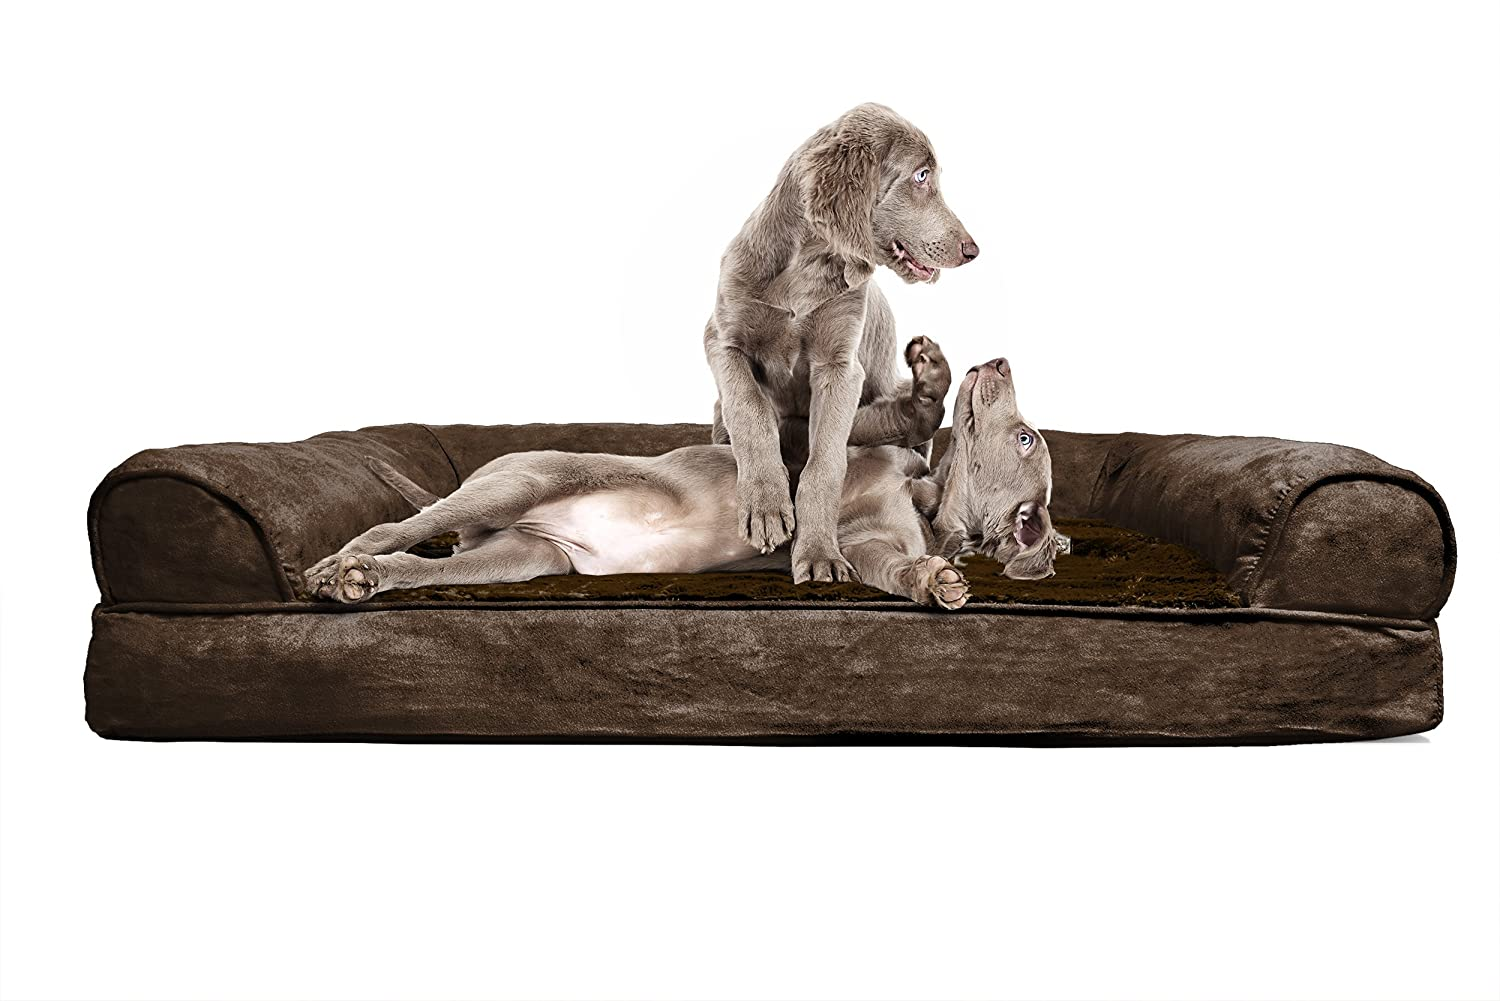 Top 10 Dog Beds And Furniture Products: Ease Of Use, Comfort & Convenience 16